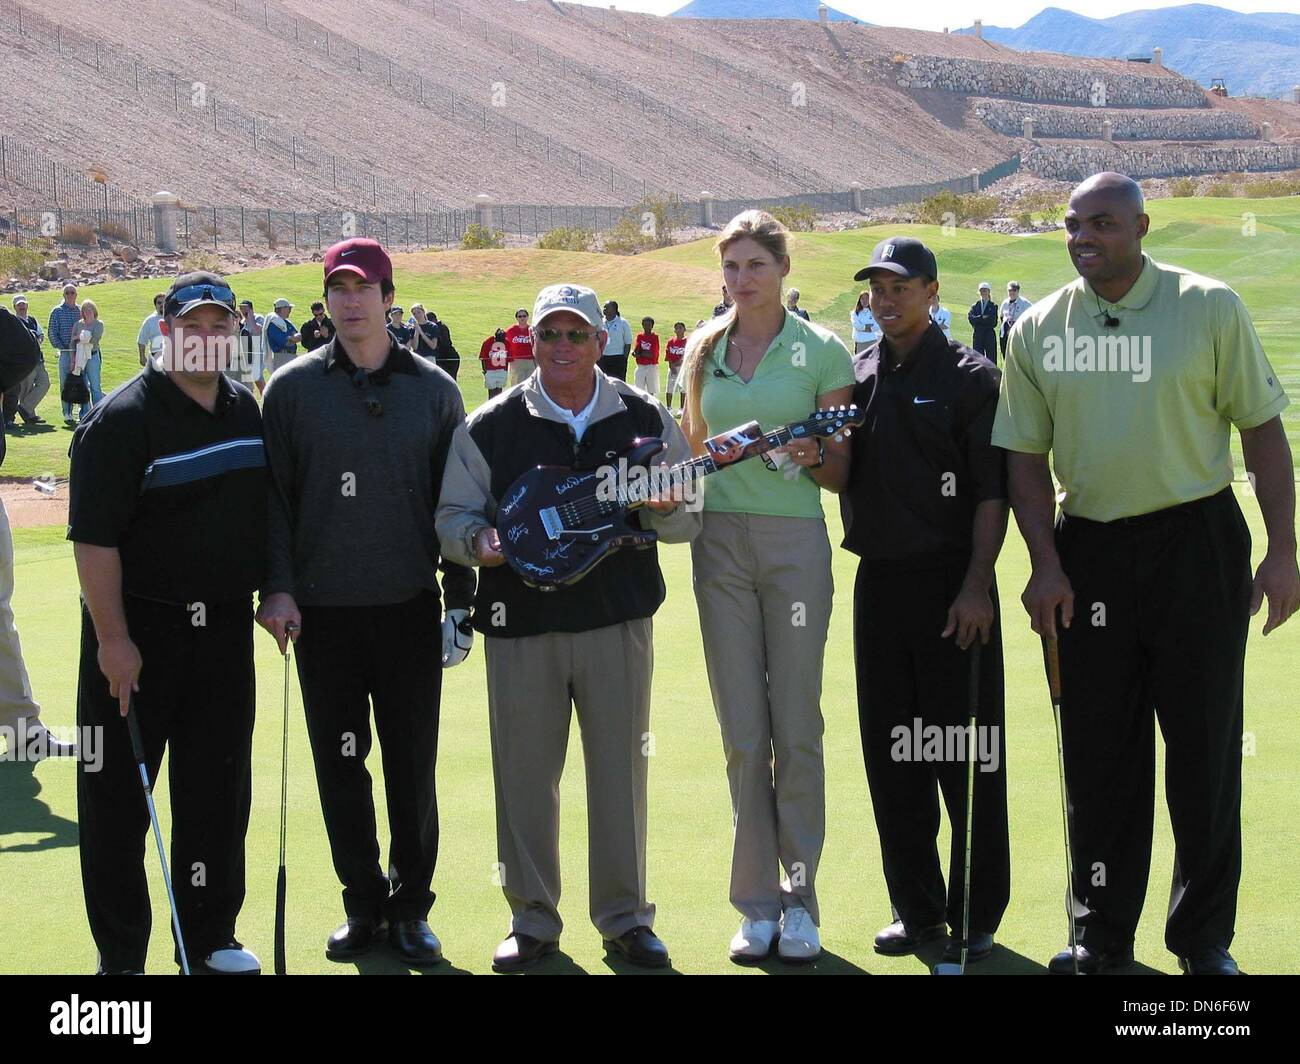 Apr. 20, 2002 - Beverly Hills, CALIFORNIA, USA - K24801MR: TIGER WOODS ''TIGER JAM V FOUNDATION''  CELEBRITY GOLF Stock Photo